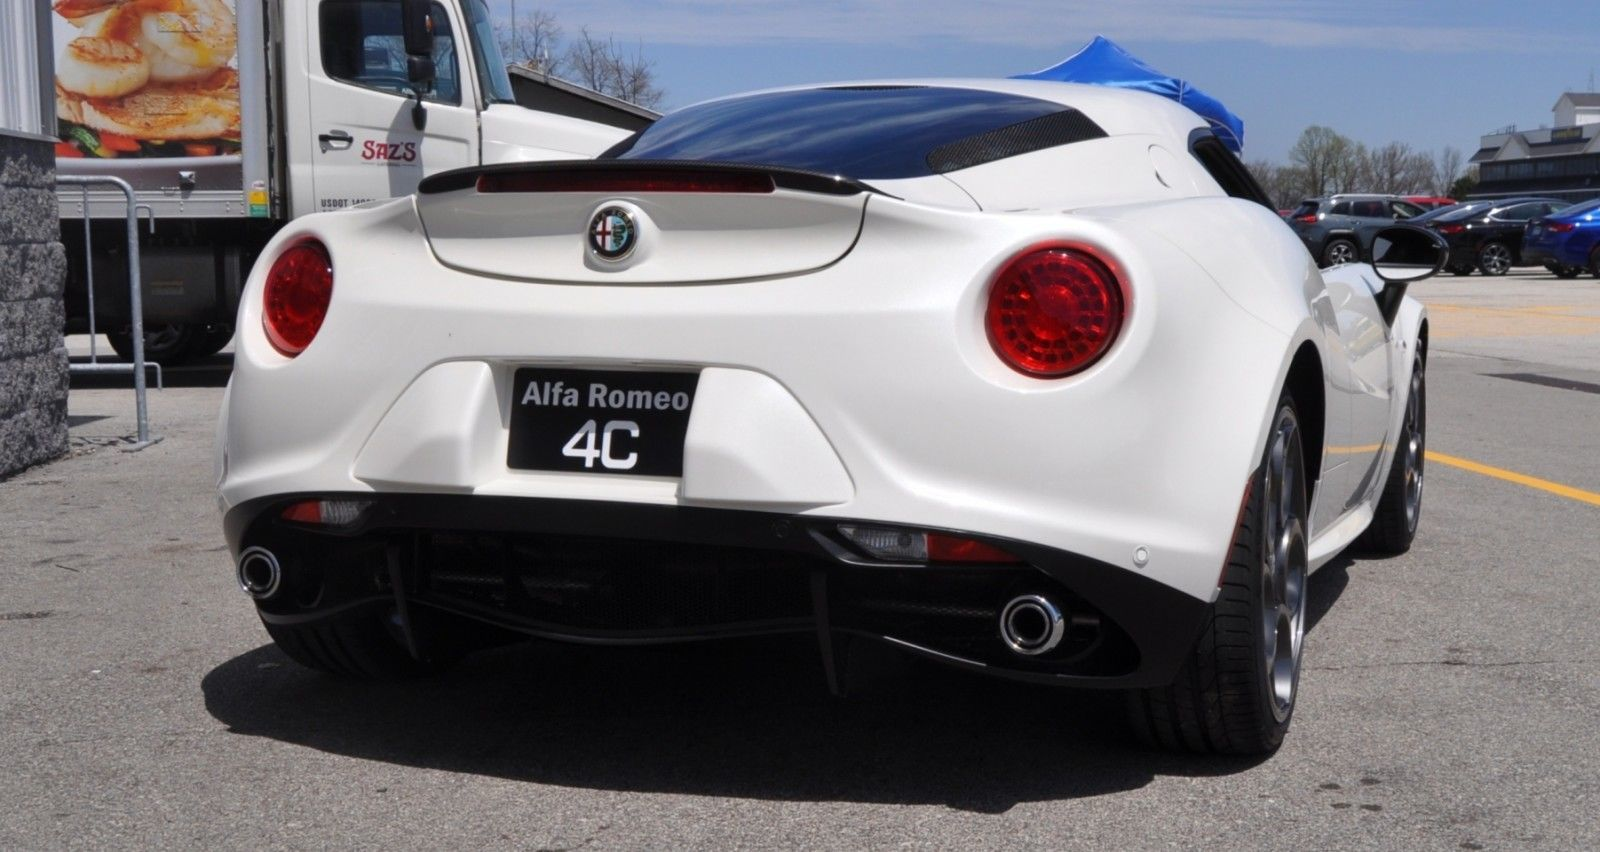 Gorgeous 2015 Alfa-Romeo 4C Revealed in Full USA Trim + New Headlights! 25